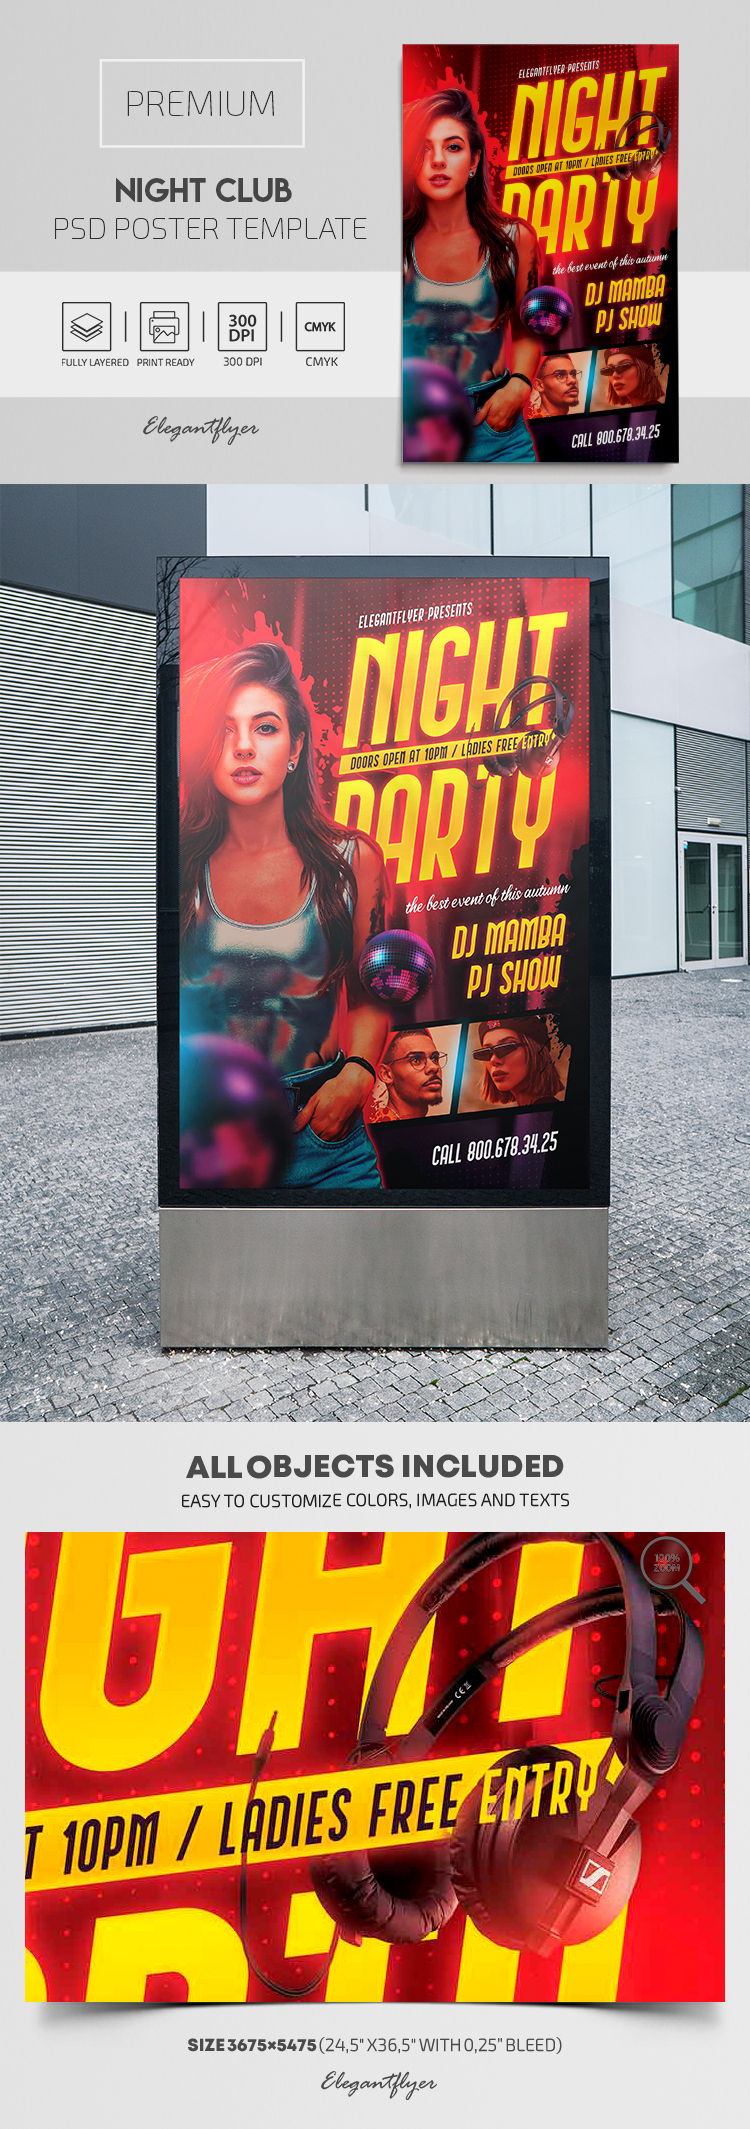 Night Club – Premium PSD Poster Template